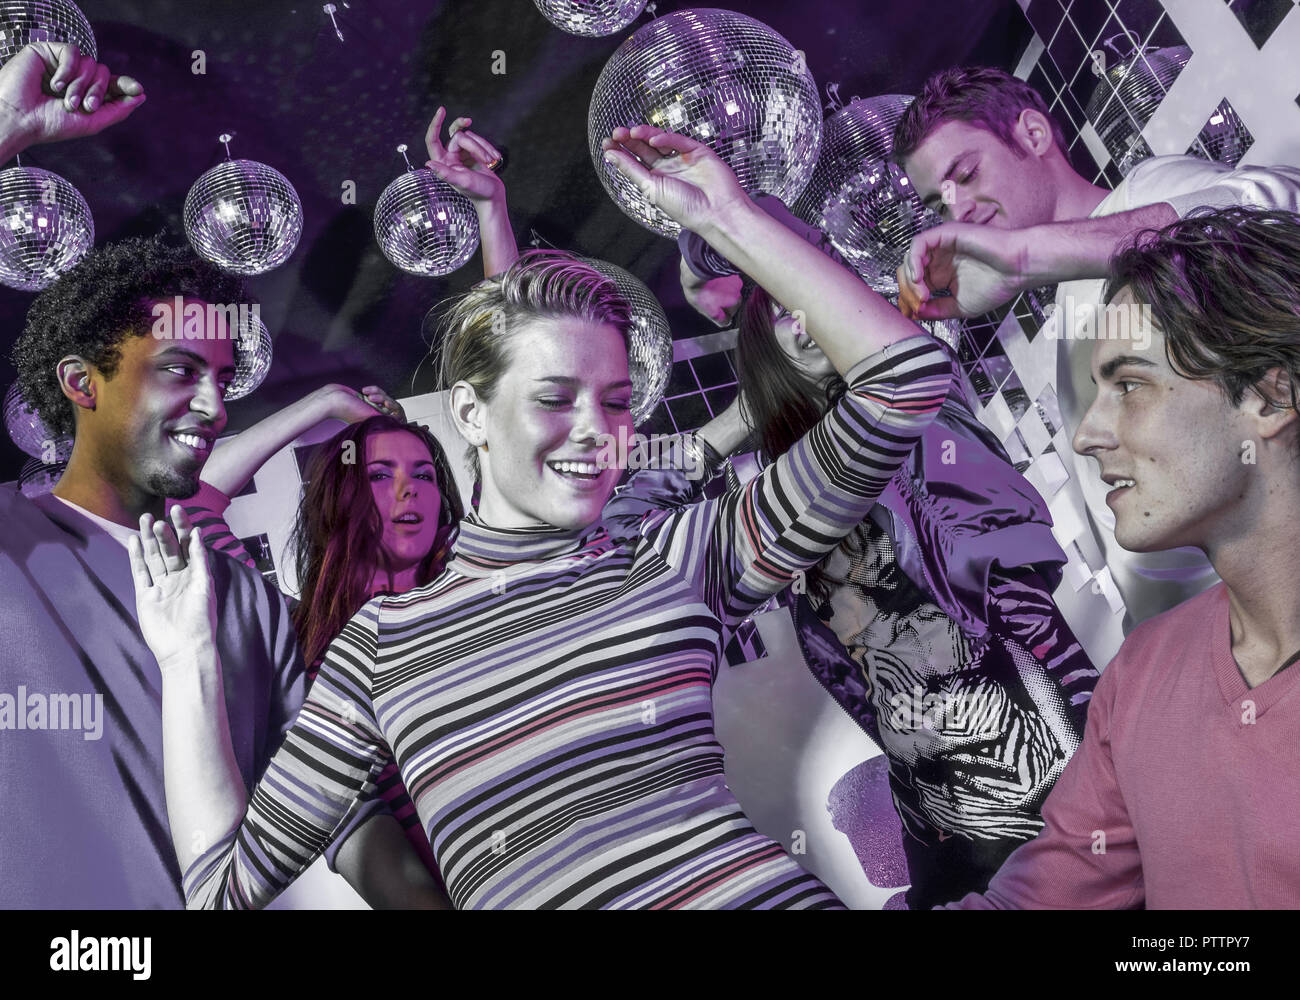 Junge Leute tanzen in Disco (model-released) - Stock Image